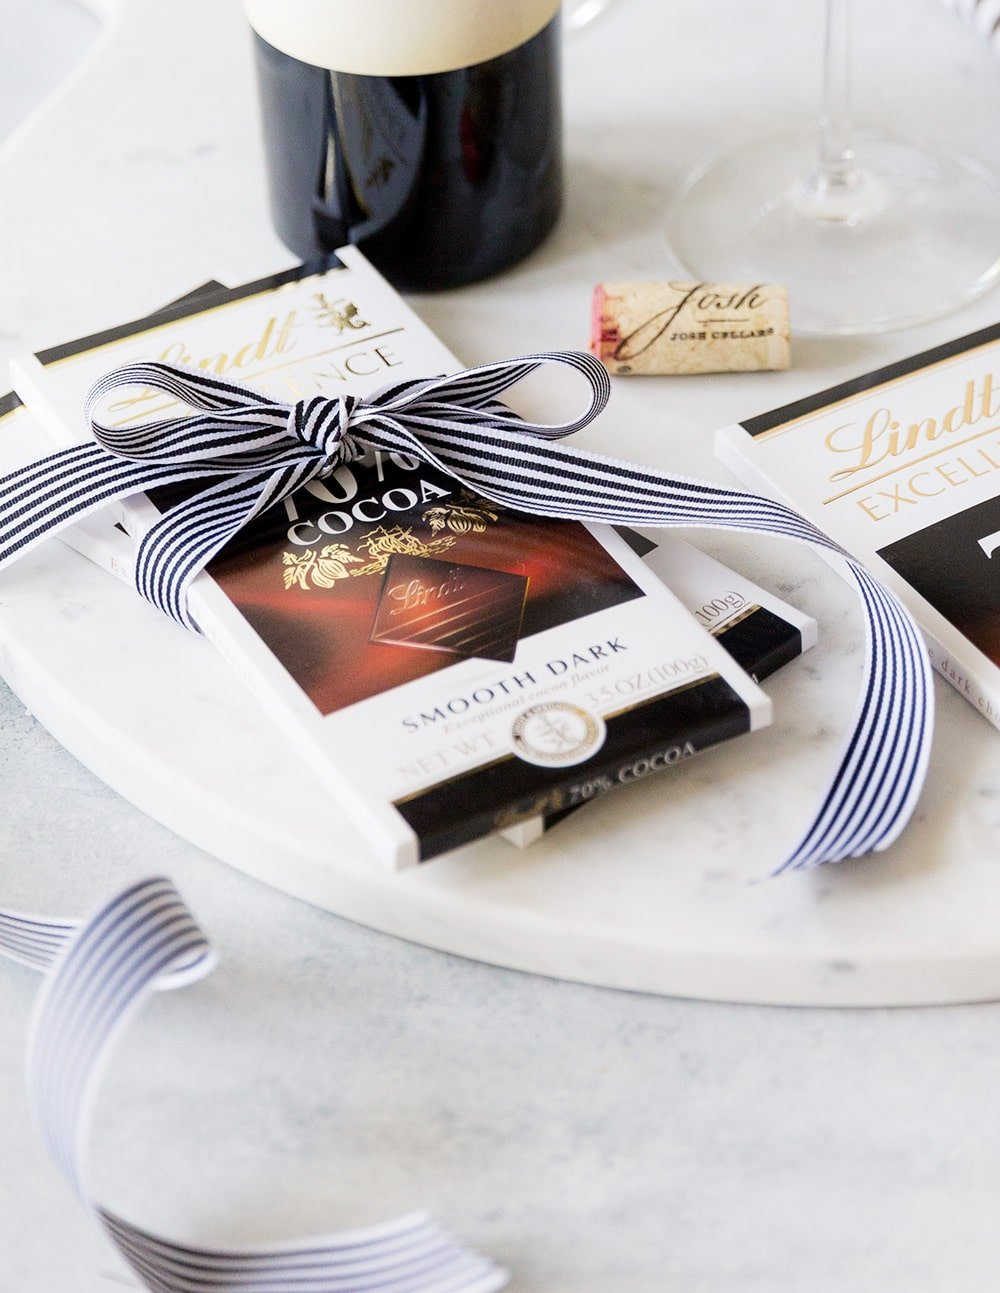 Chocolate Pairing Party Favors